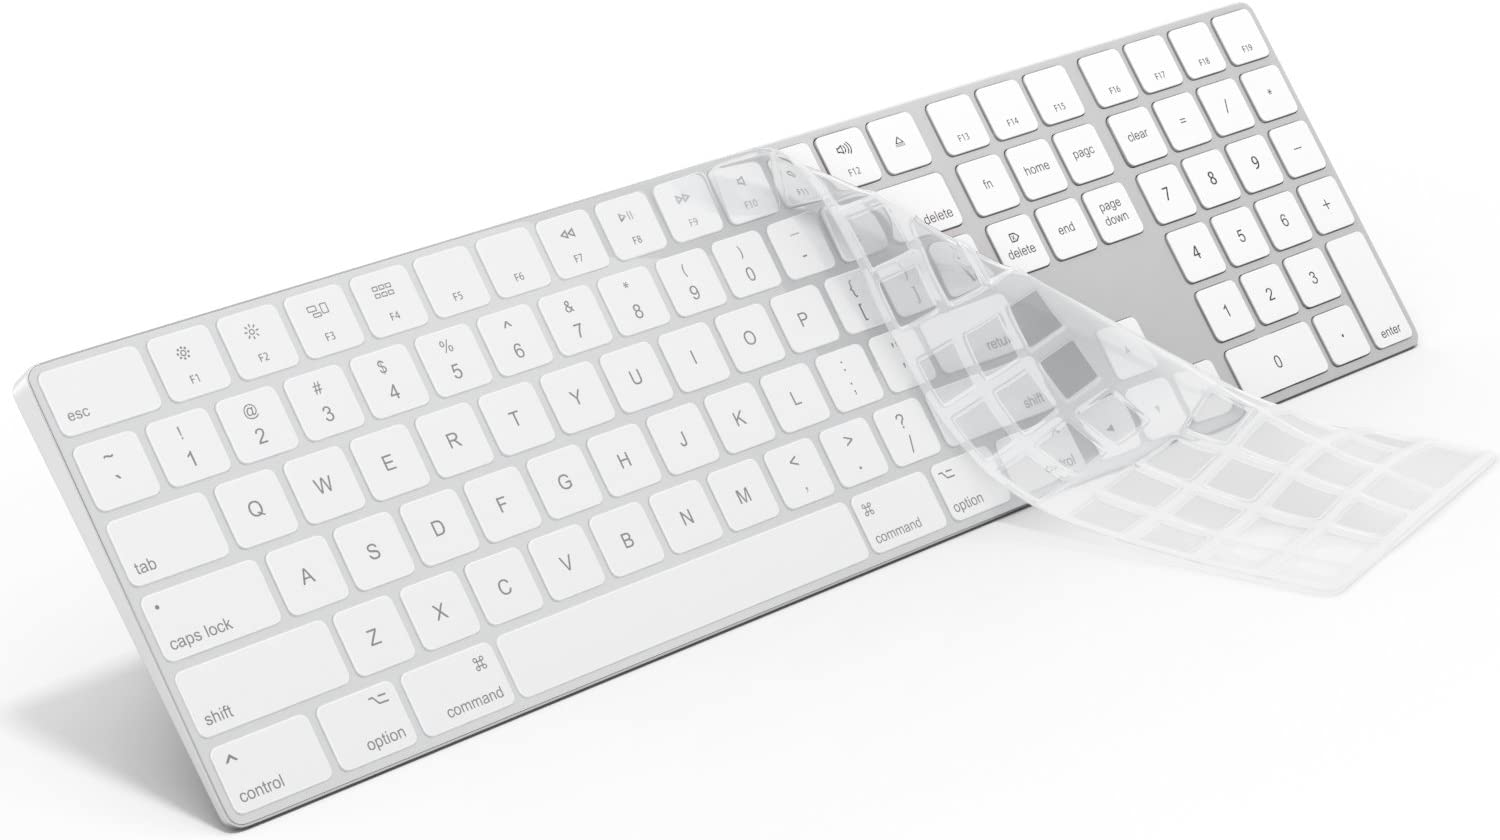 Silicone Thin Keyboard Skin Cover Protector with Numeric Keypad for iMac Black,Black